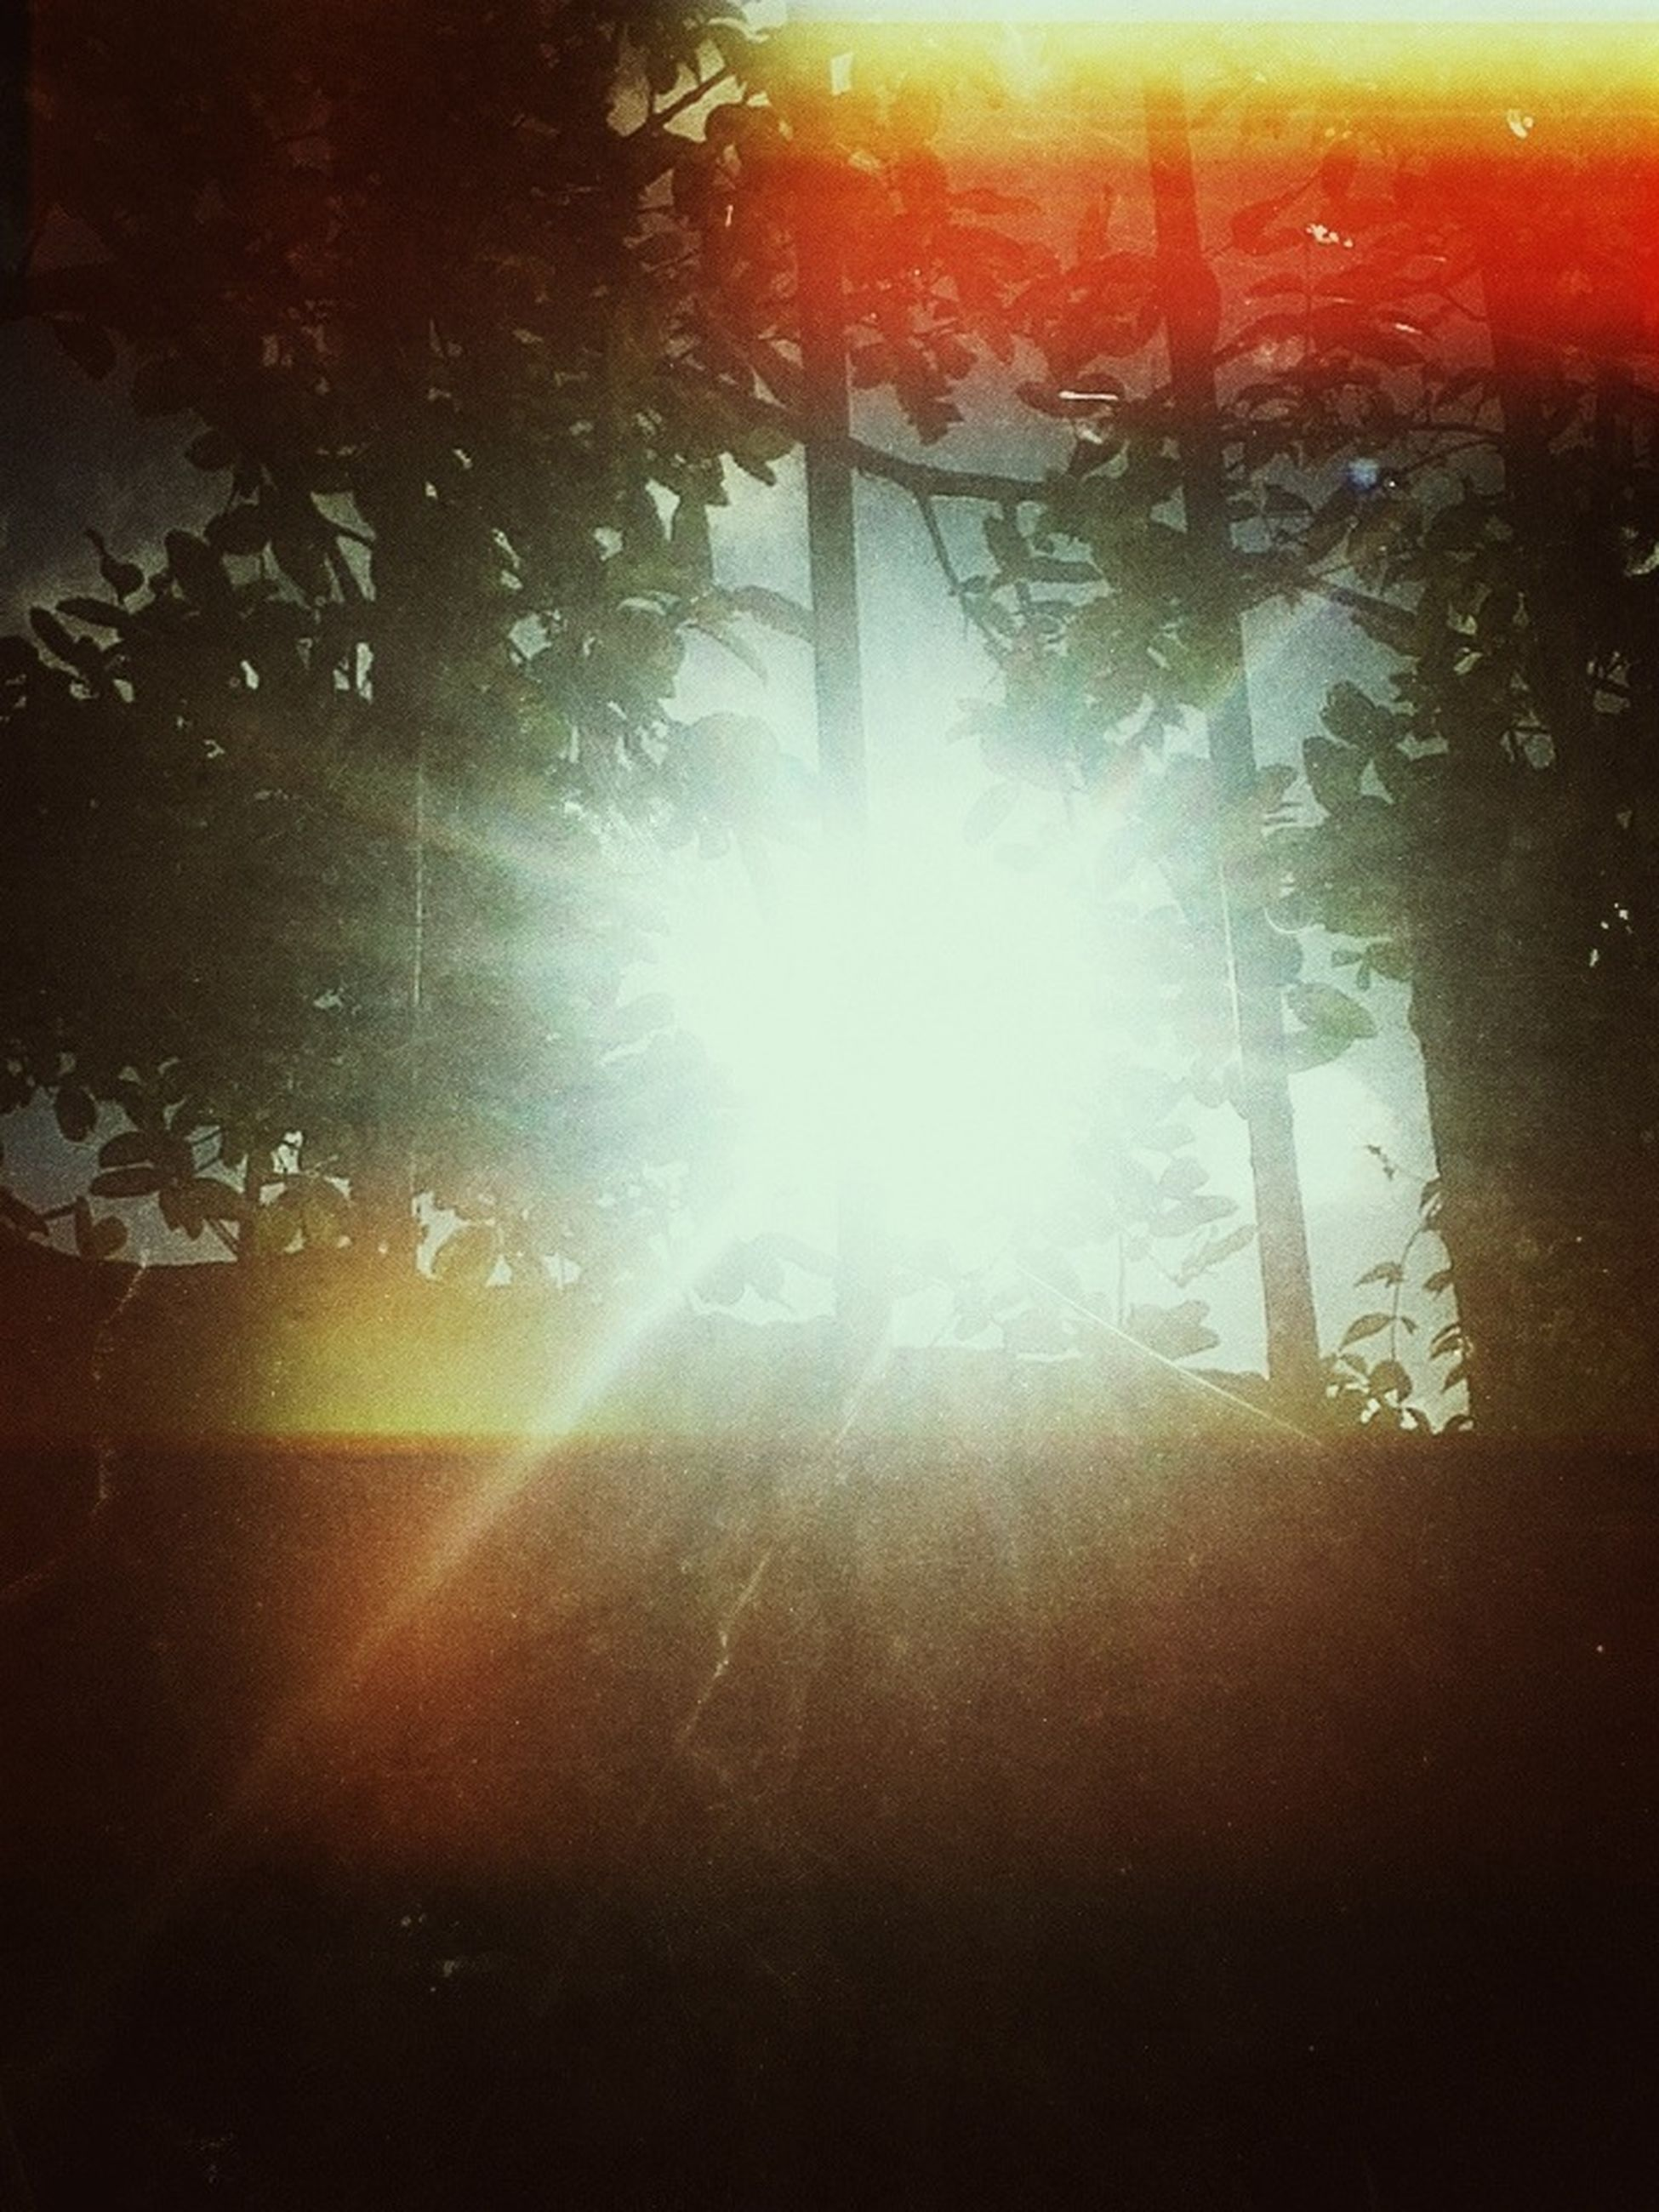 sun, sunbeam, lens flare, sunlight, tree, sunset, bright, tranquility, nature, back lit, silhouette, orange color, no people, beauty in nature, season, sunny, outdoors, streaming, built structure, falling